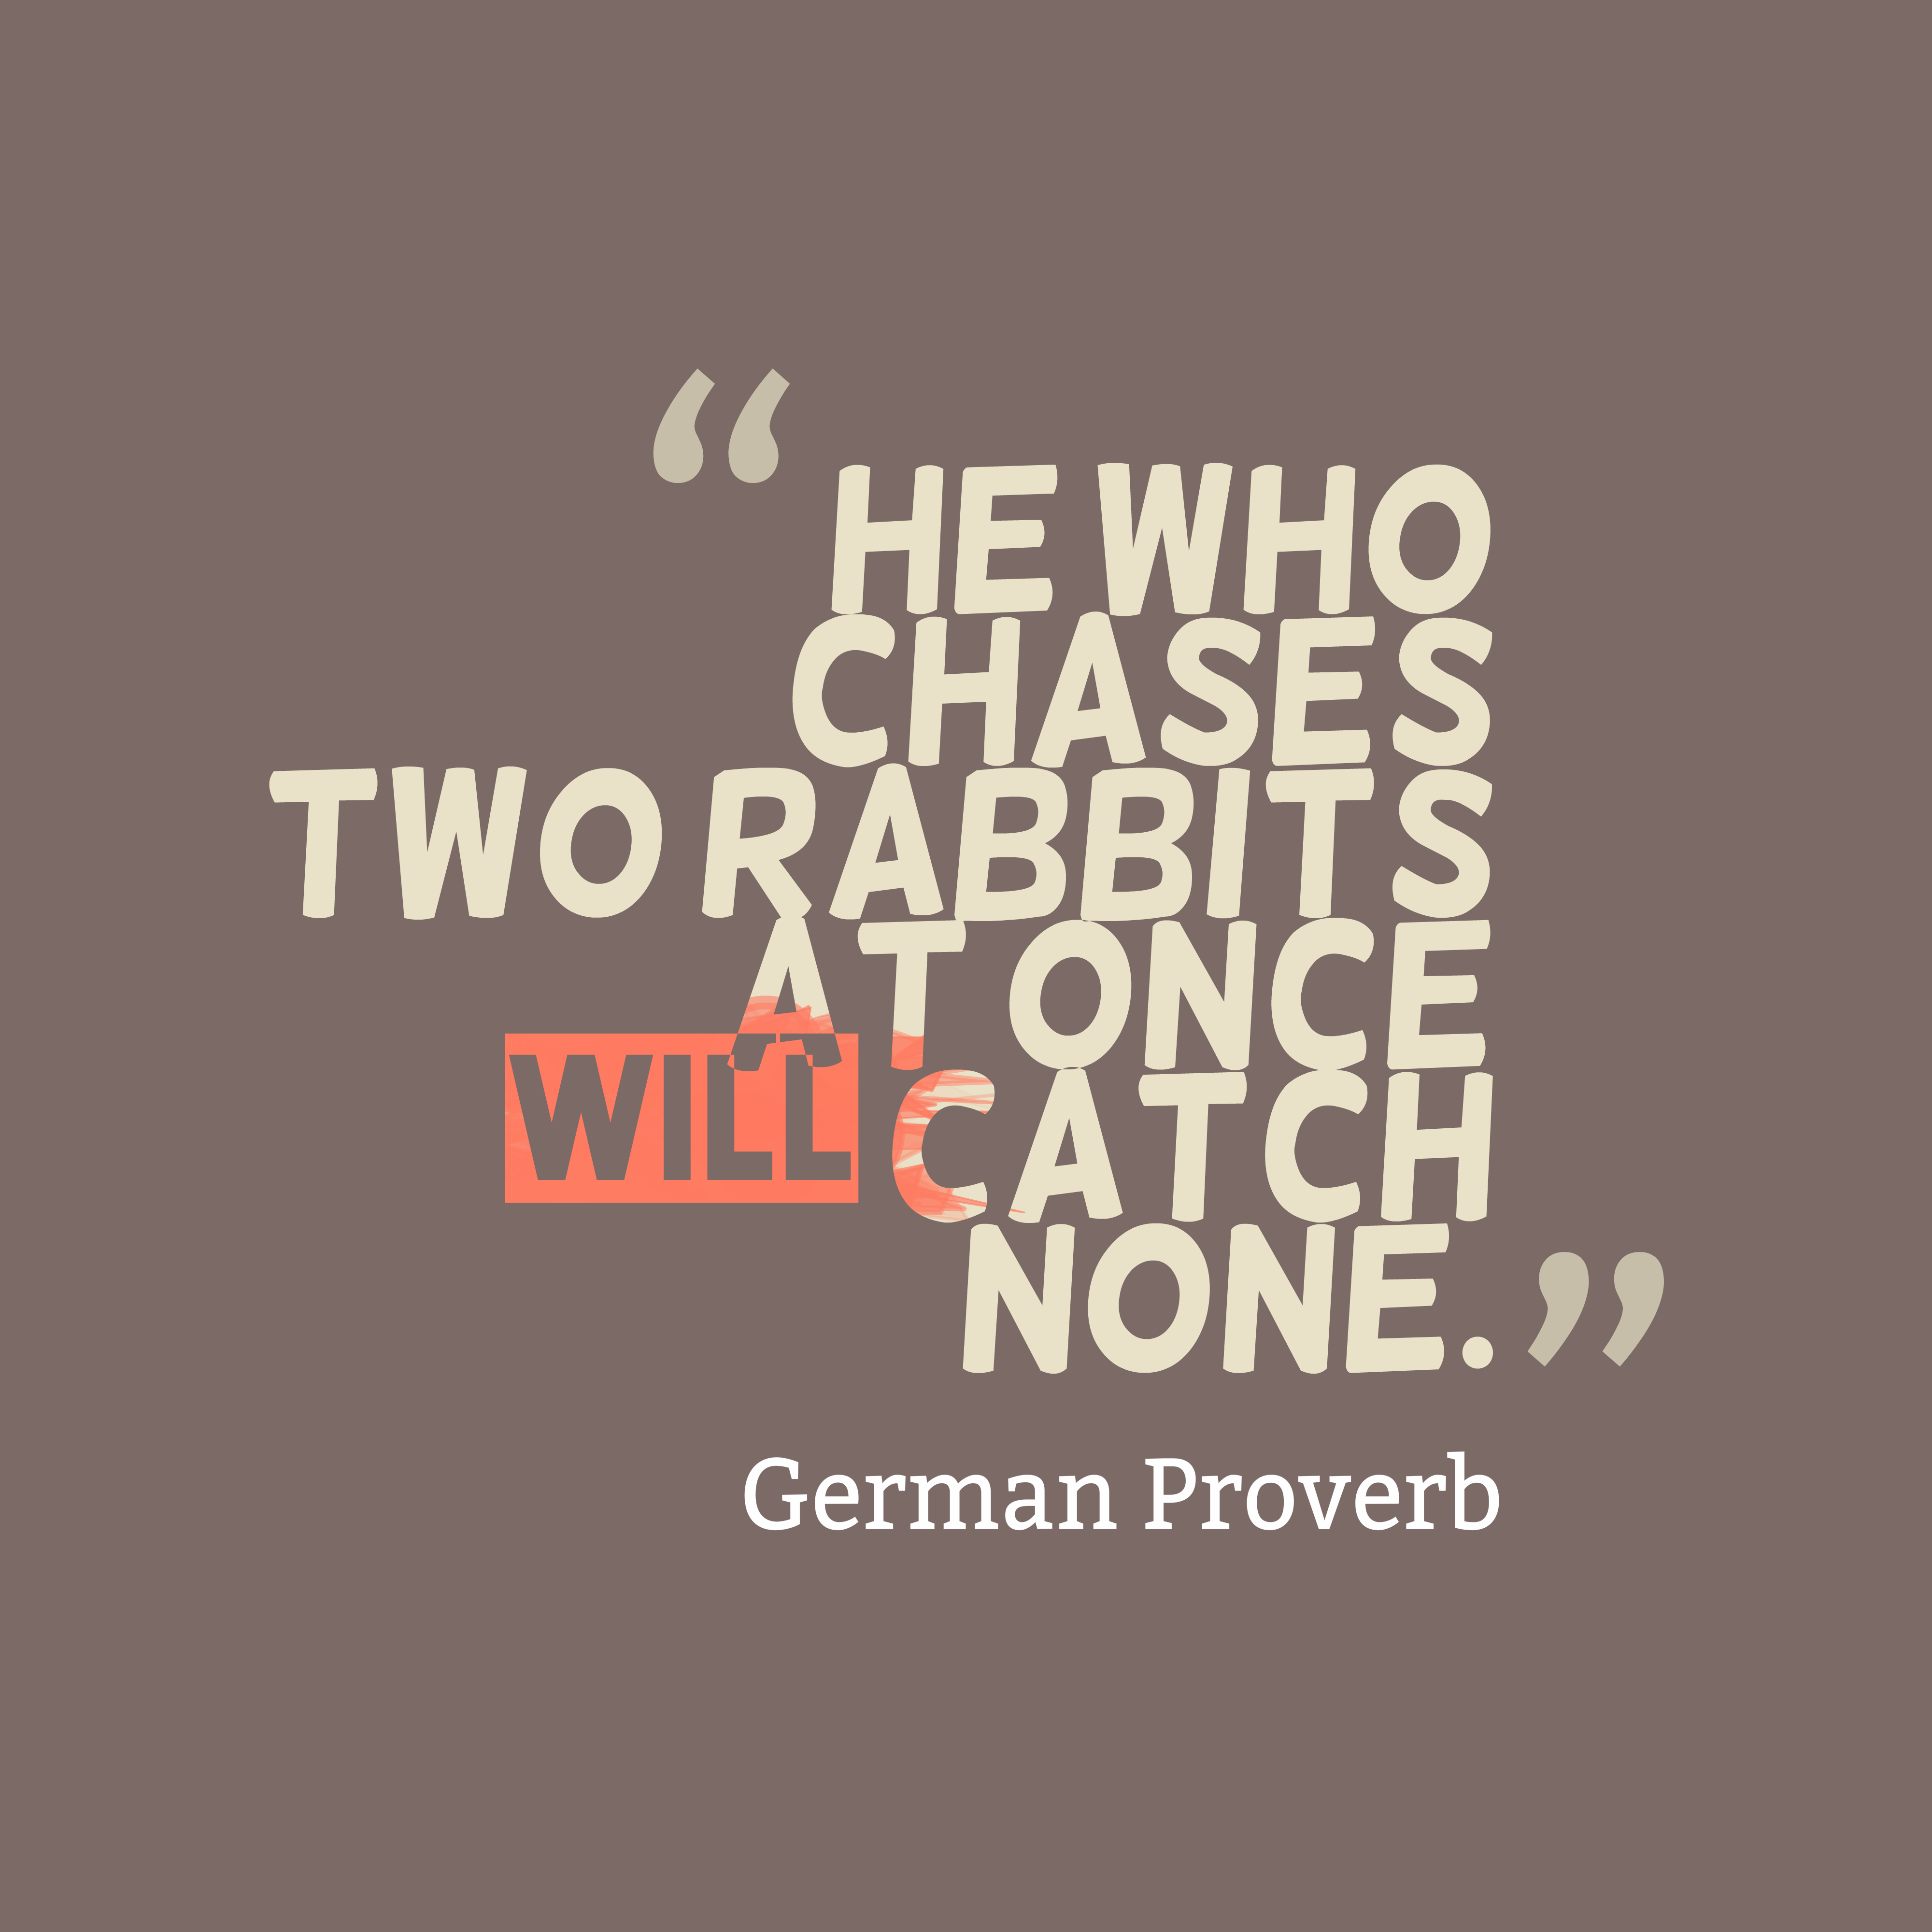 Quotes image of He who chases two rabbits at once will catch none.